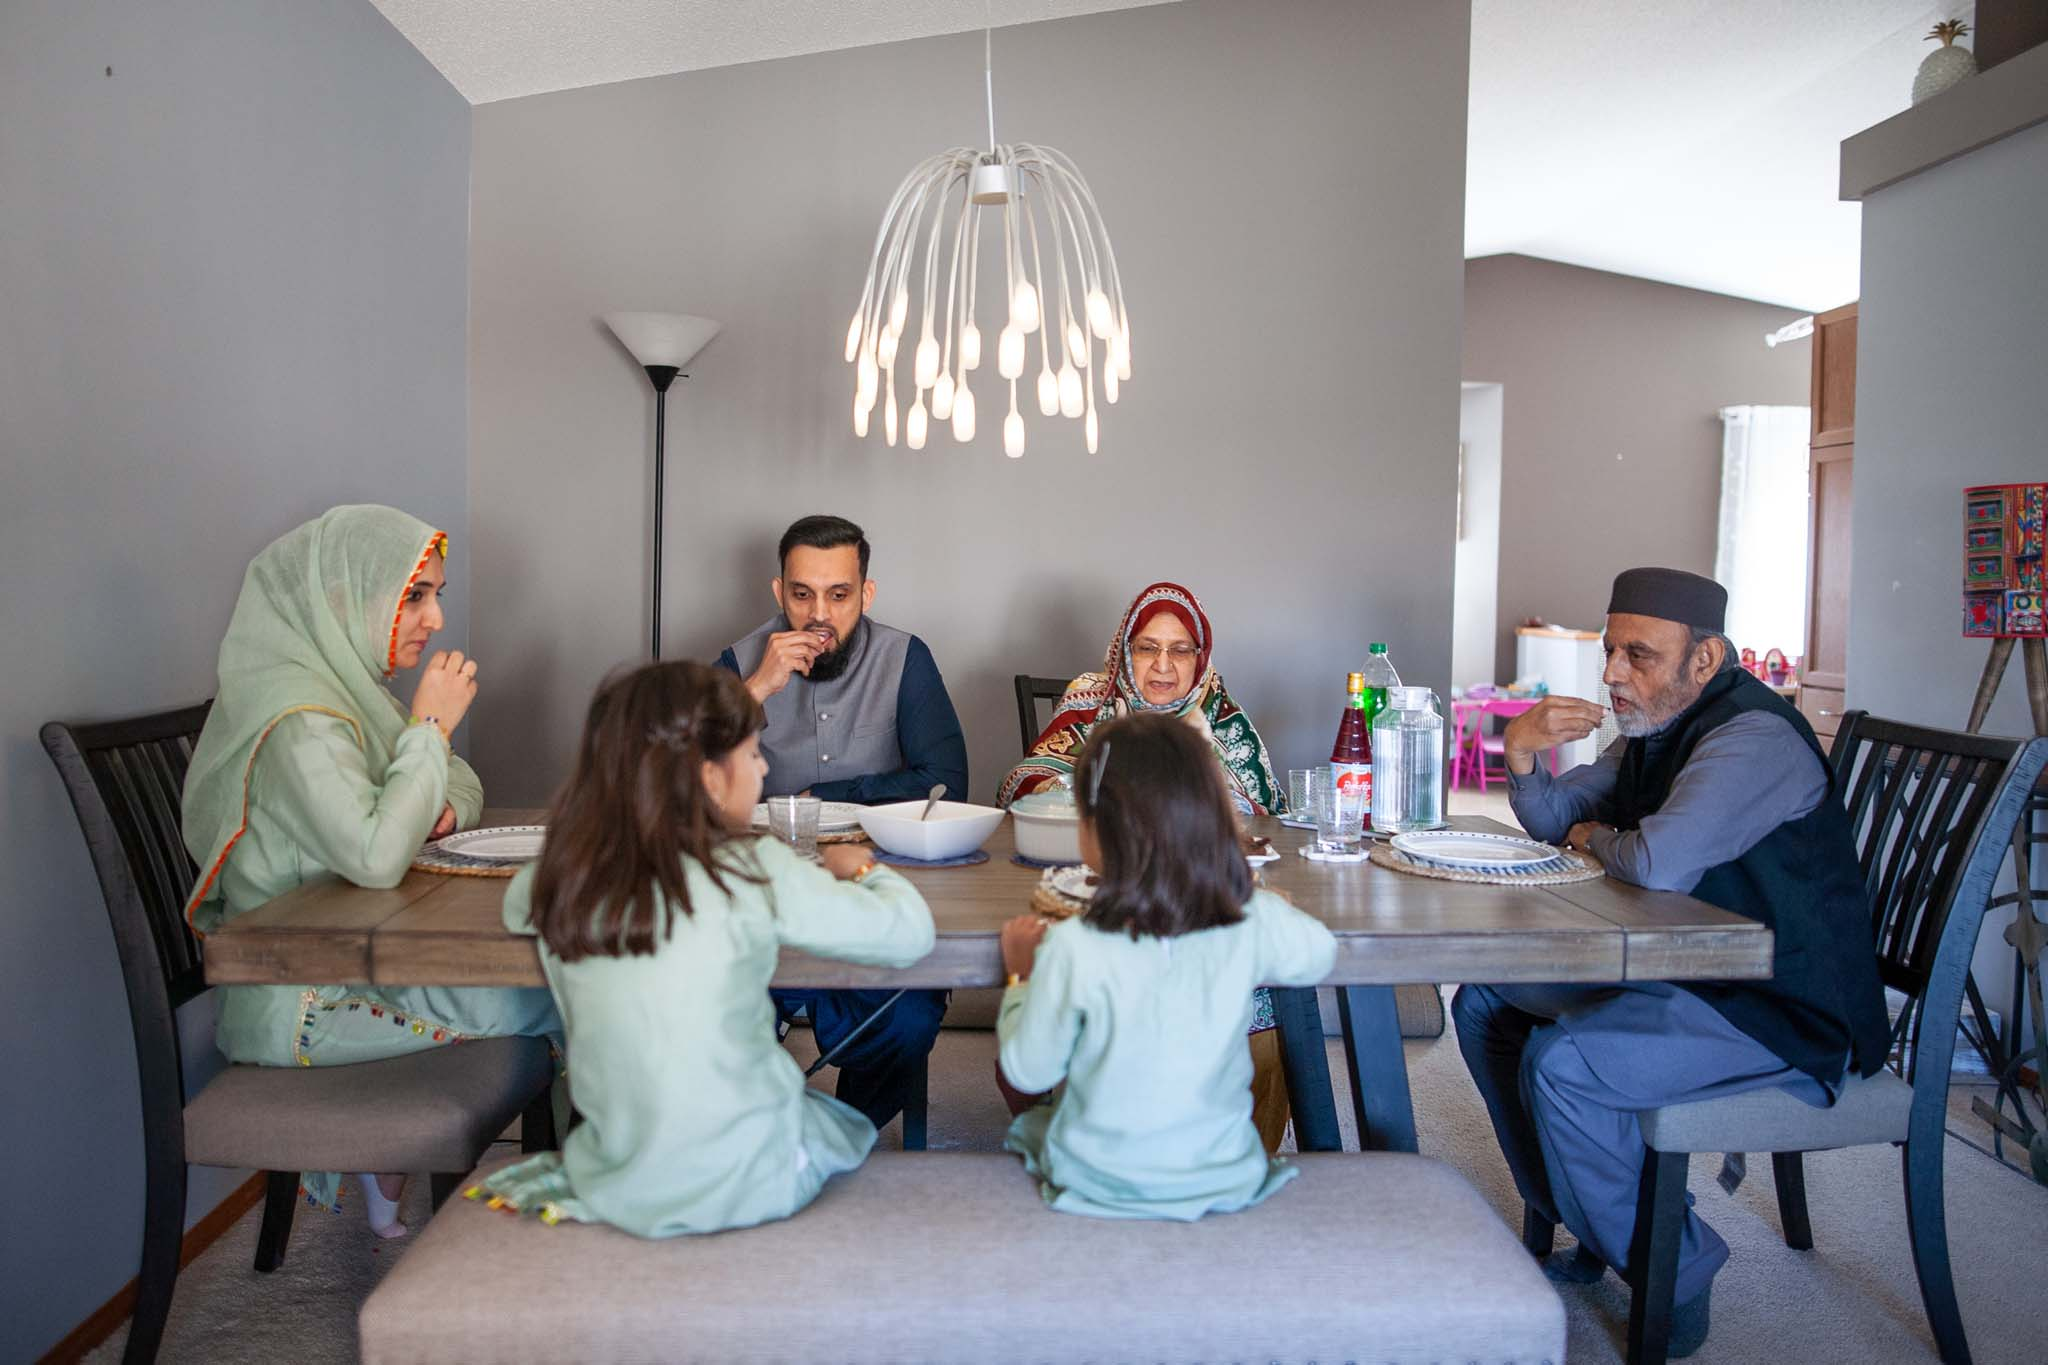 Asra  Waleed's family, including grandparents who also live in the home, sit around a table as they demonstrate breaking the ramadan fast.